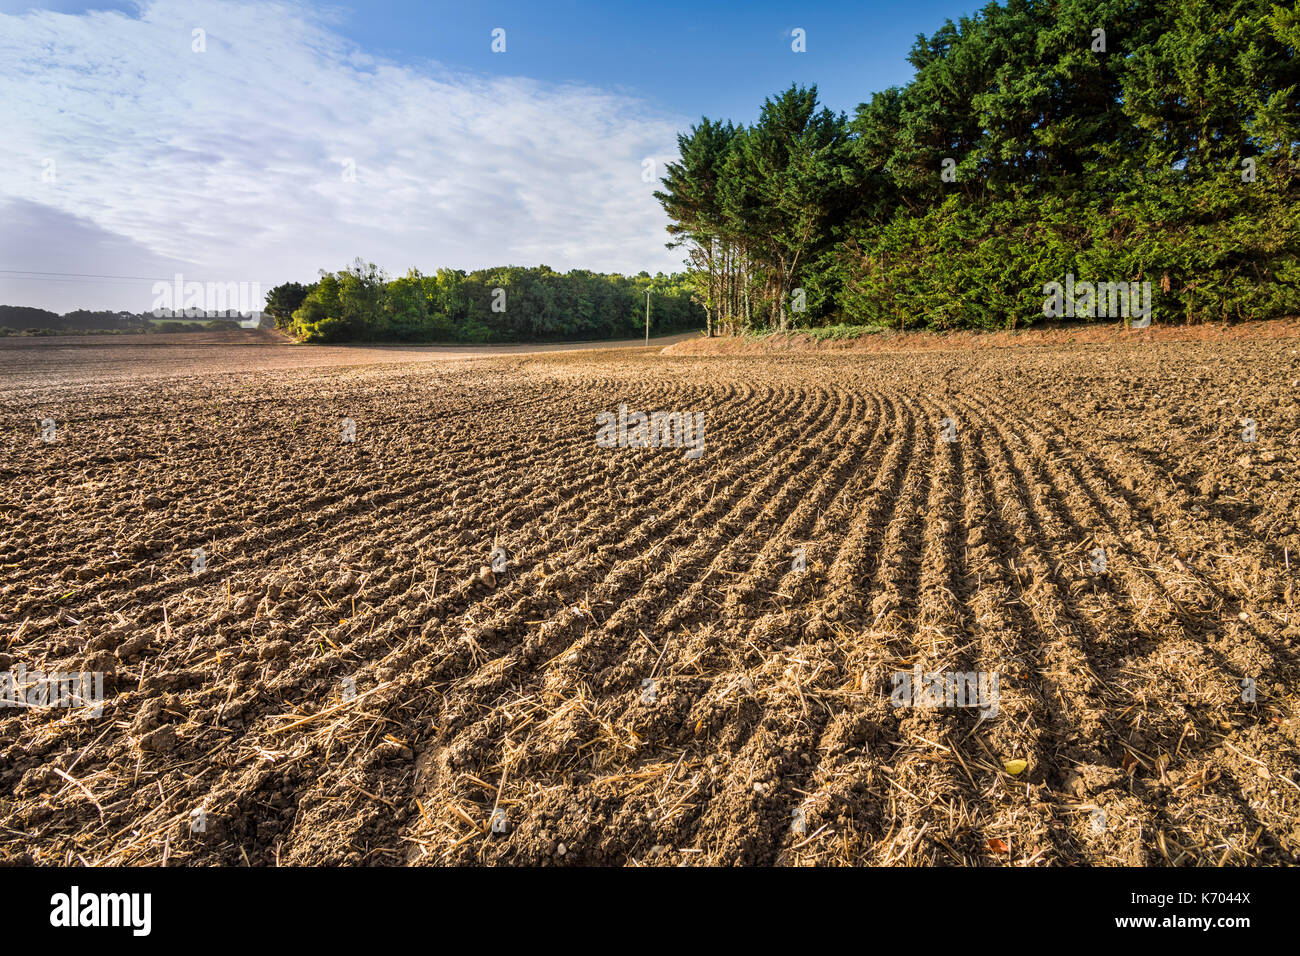 Newly harrowed farm field, France. - Stock Image